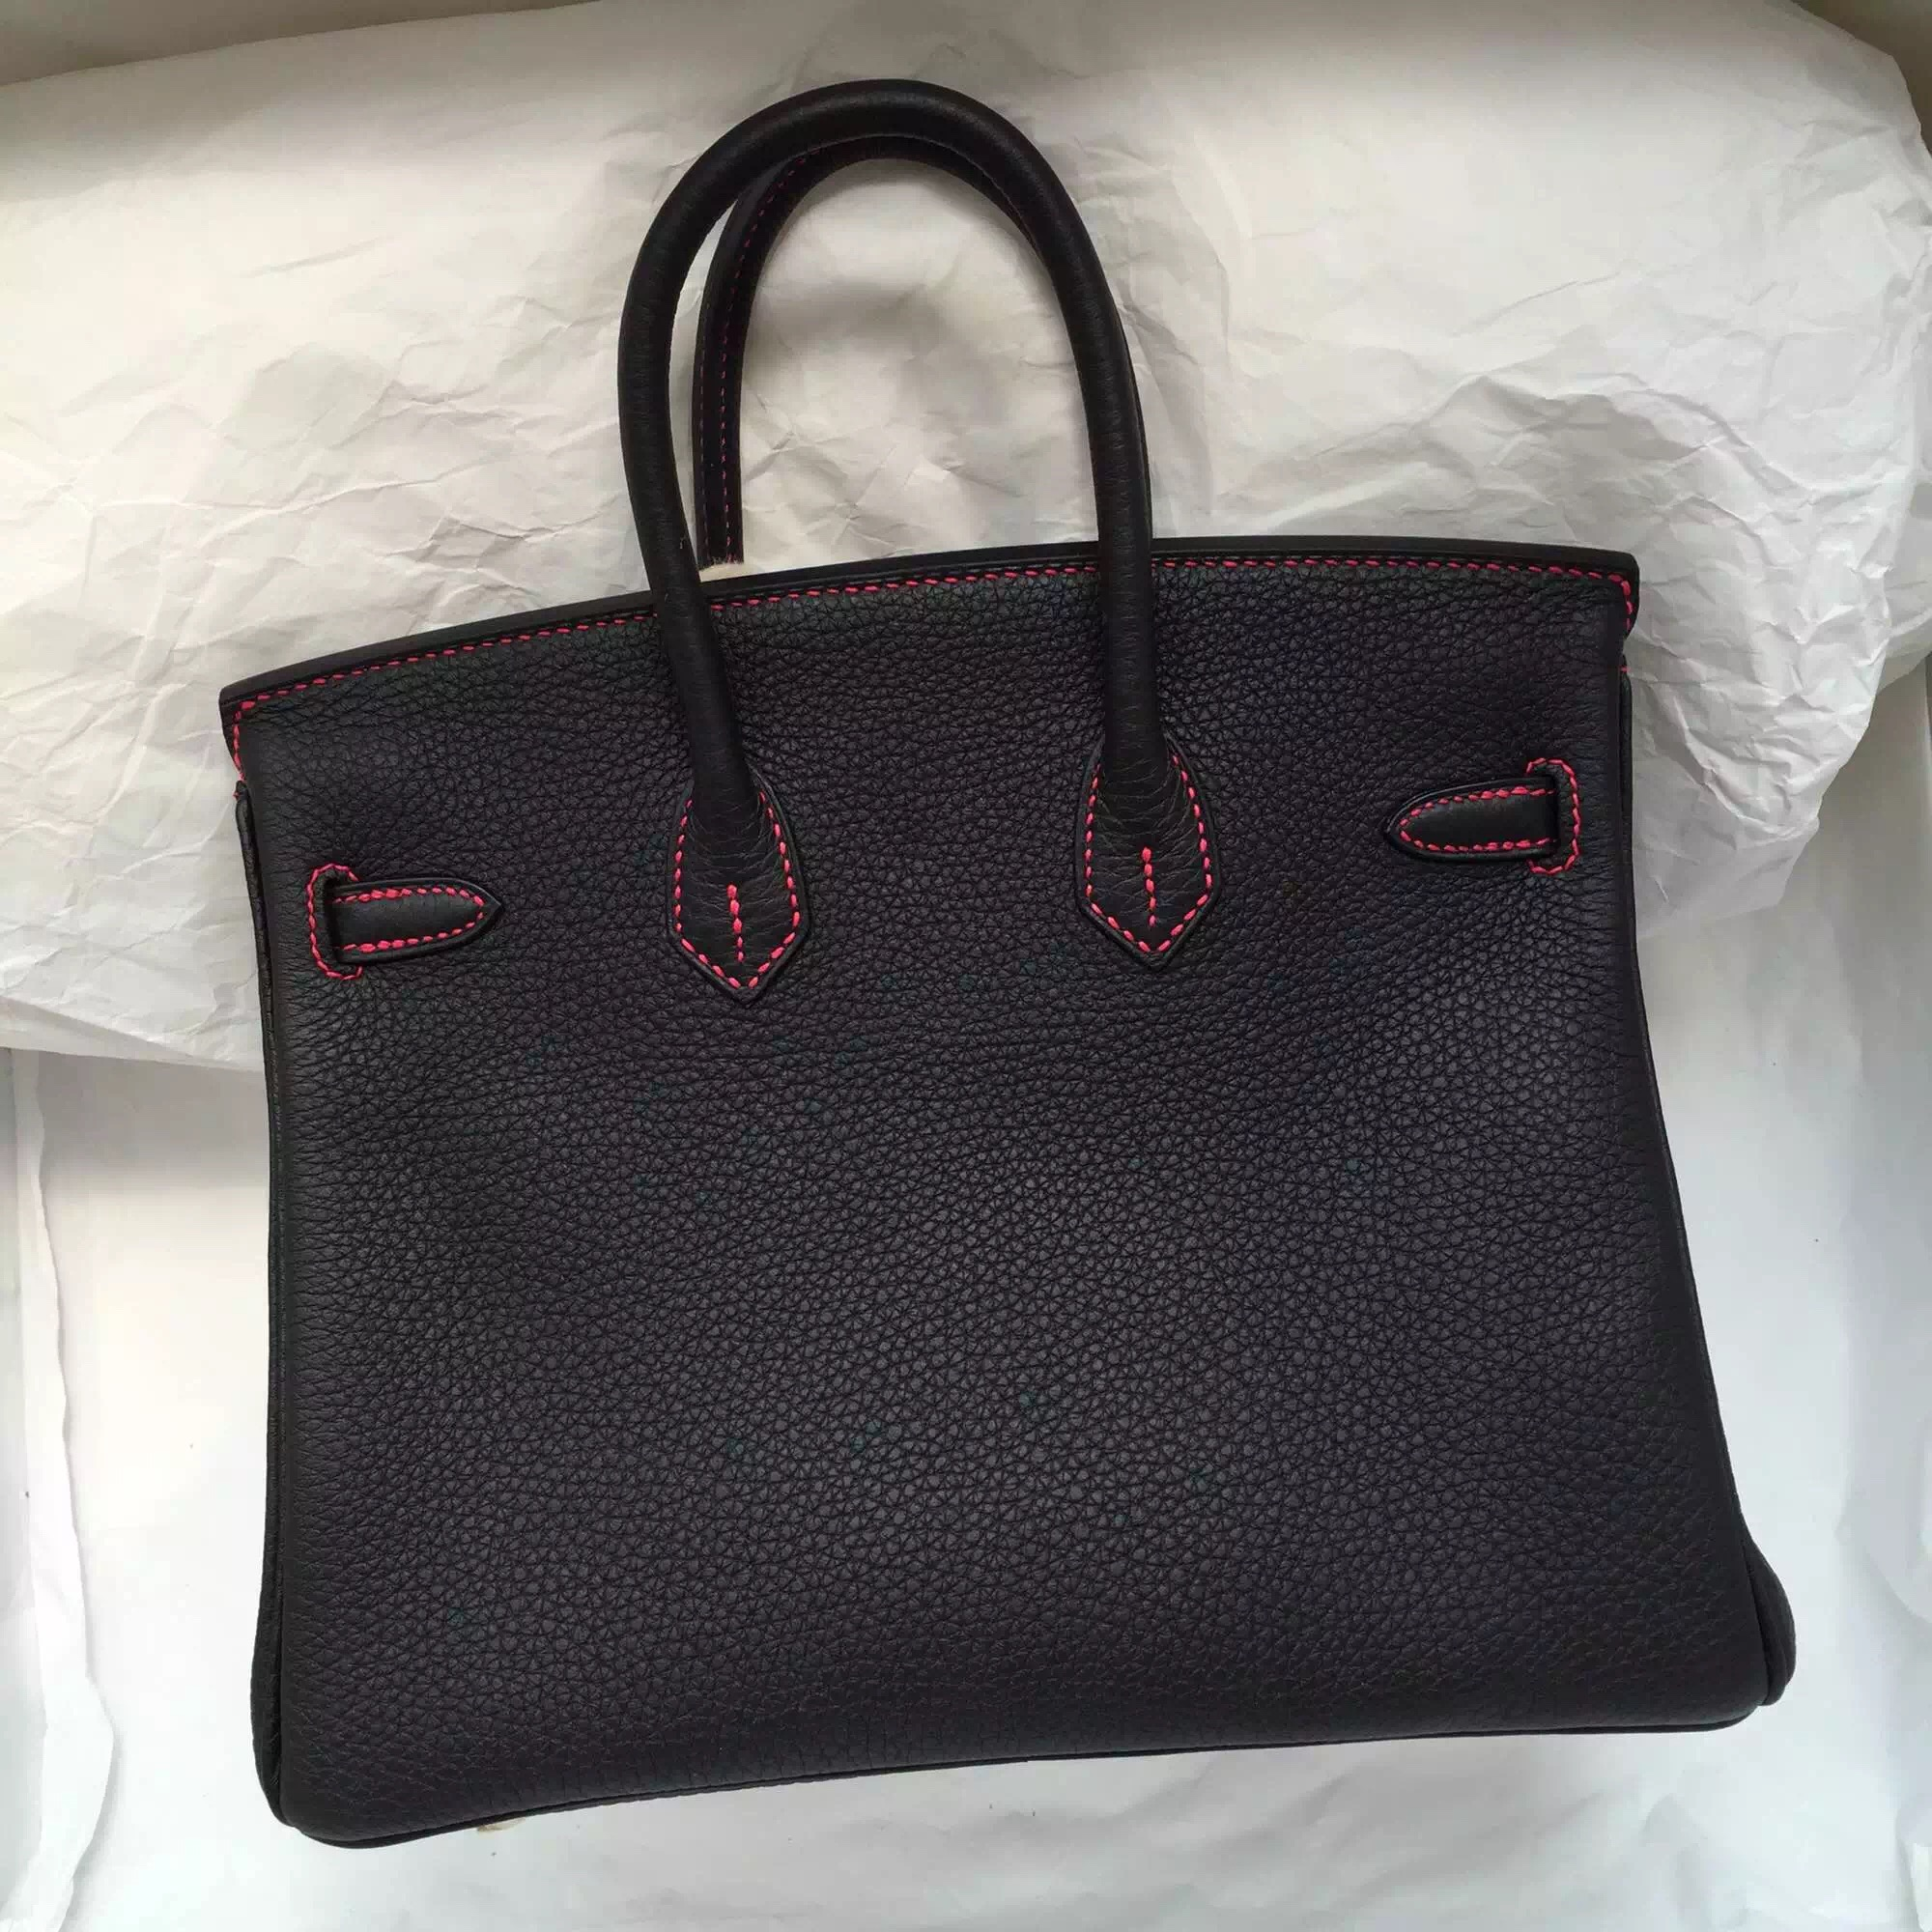 Cheap Hermes Birkin Bag 25CM in 89 Black/E5 Candy Pink Togo Leather With Red Stitching Line